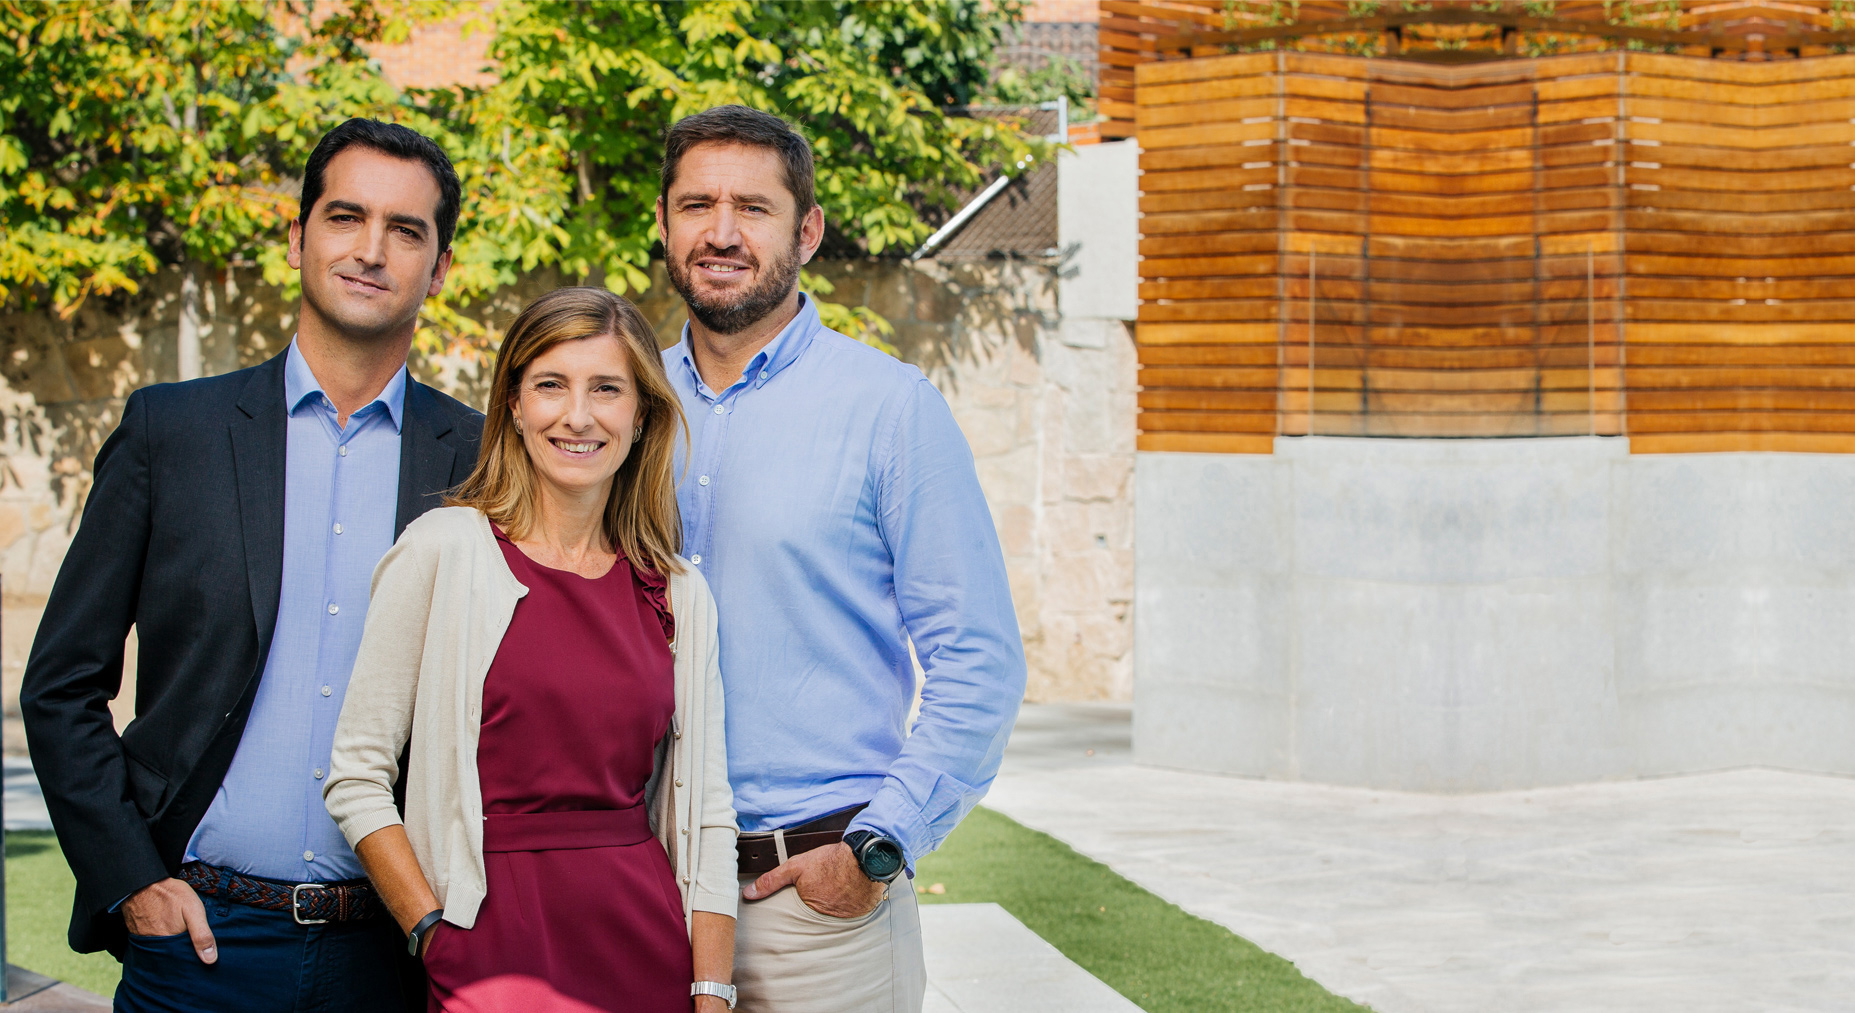 Carmén Giné, Global Wines Marketing Director & Marketing Communications. 